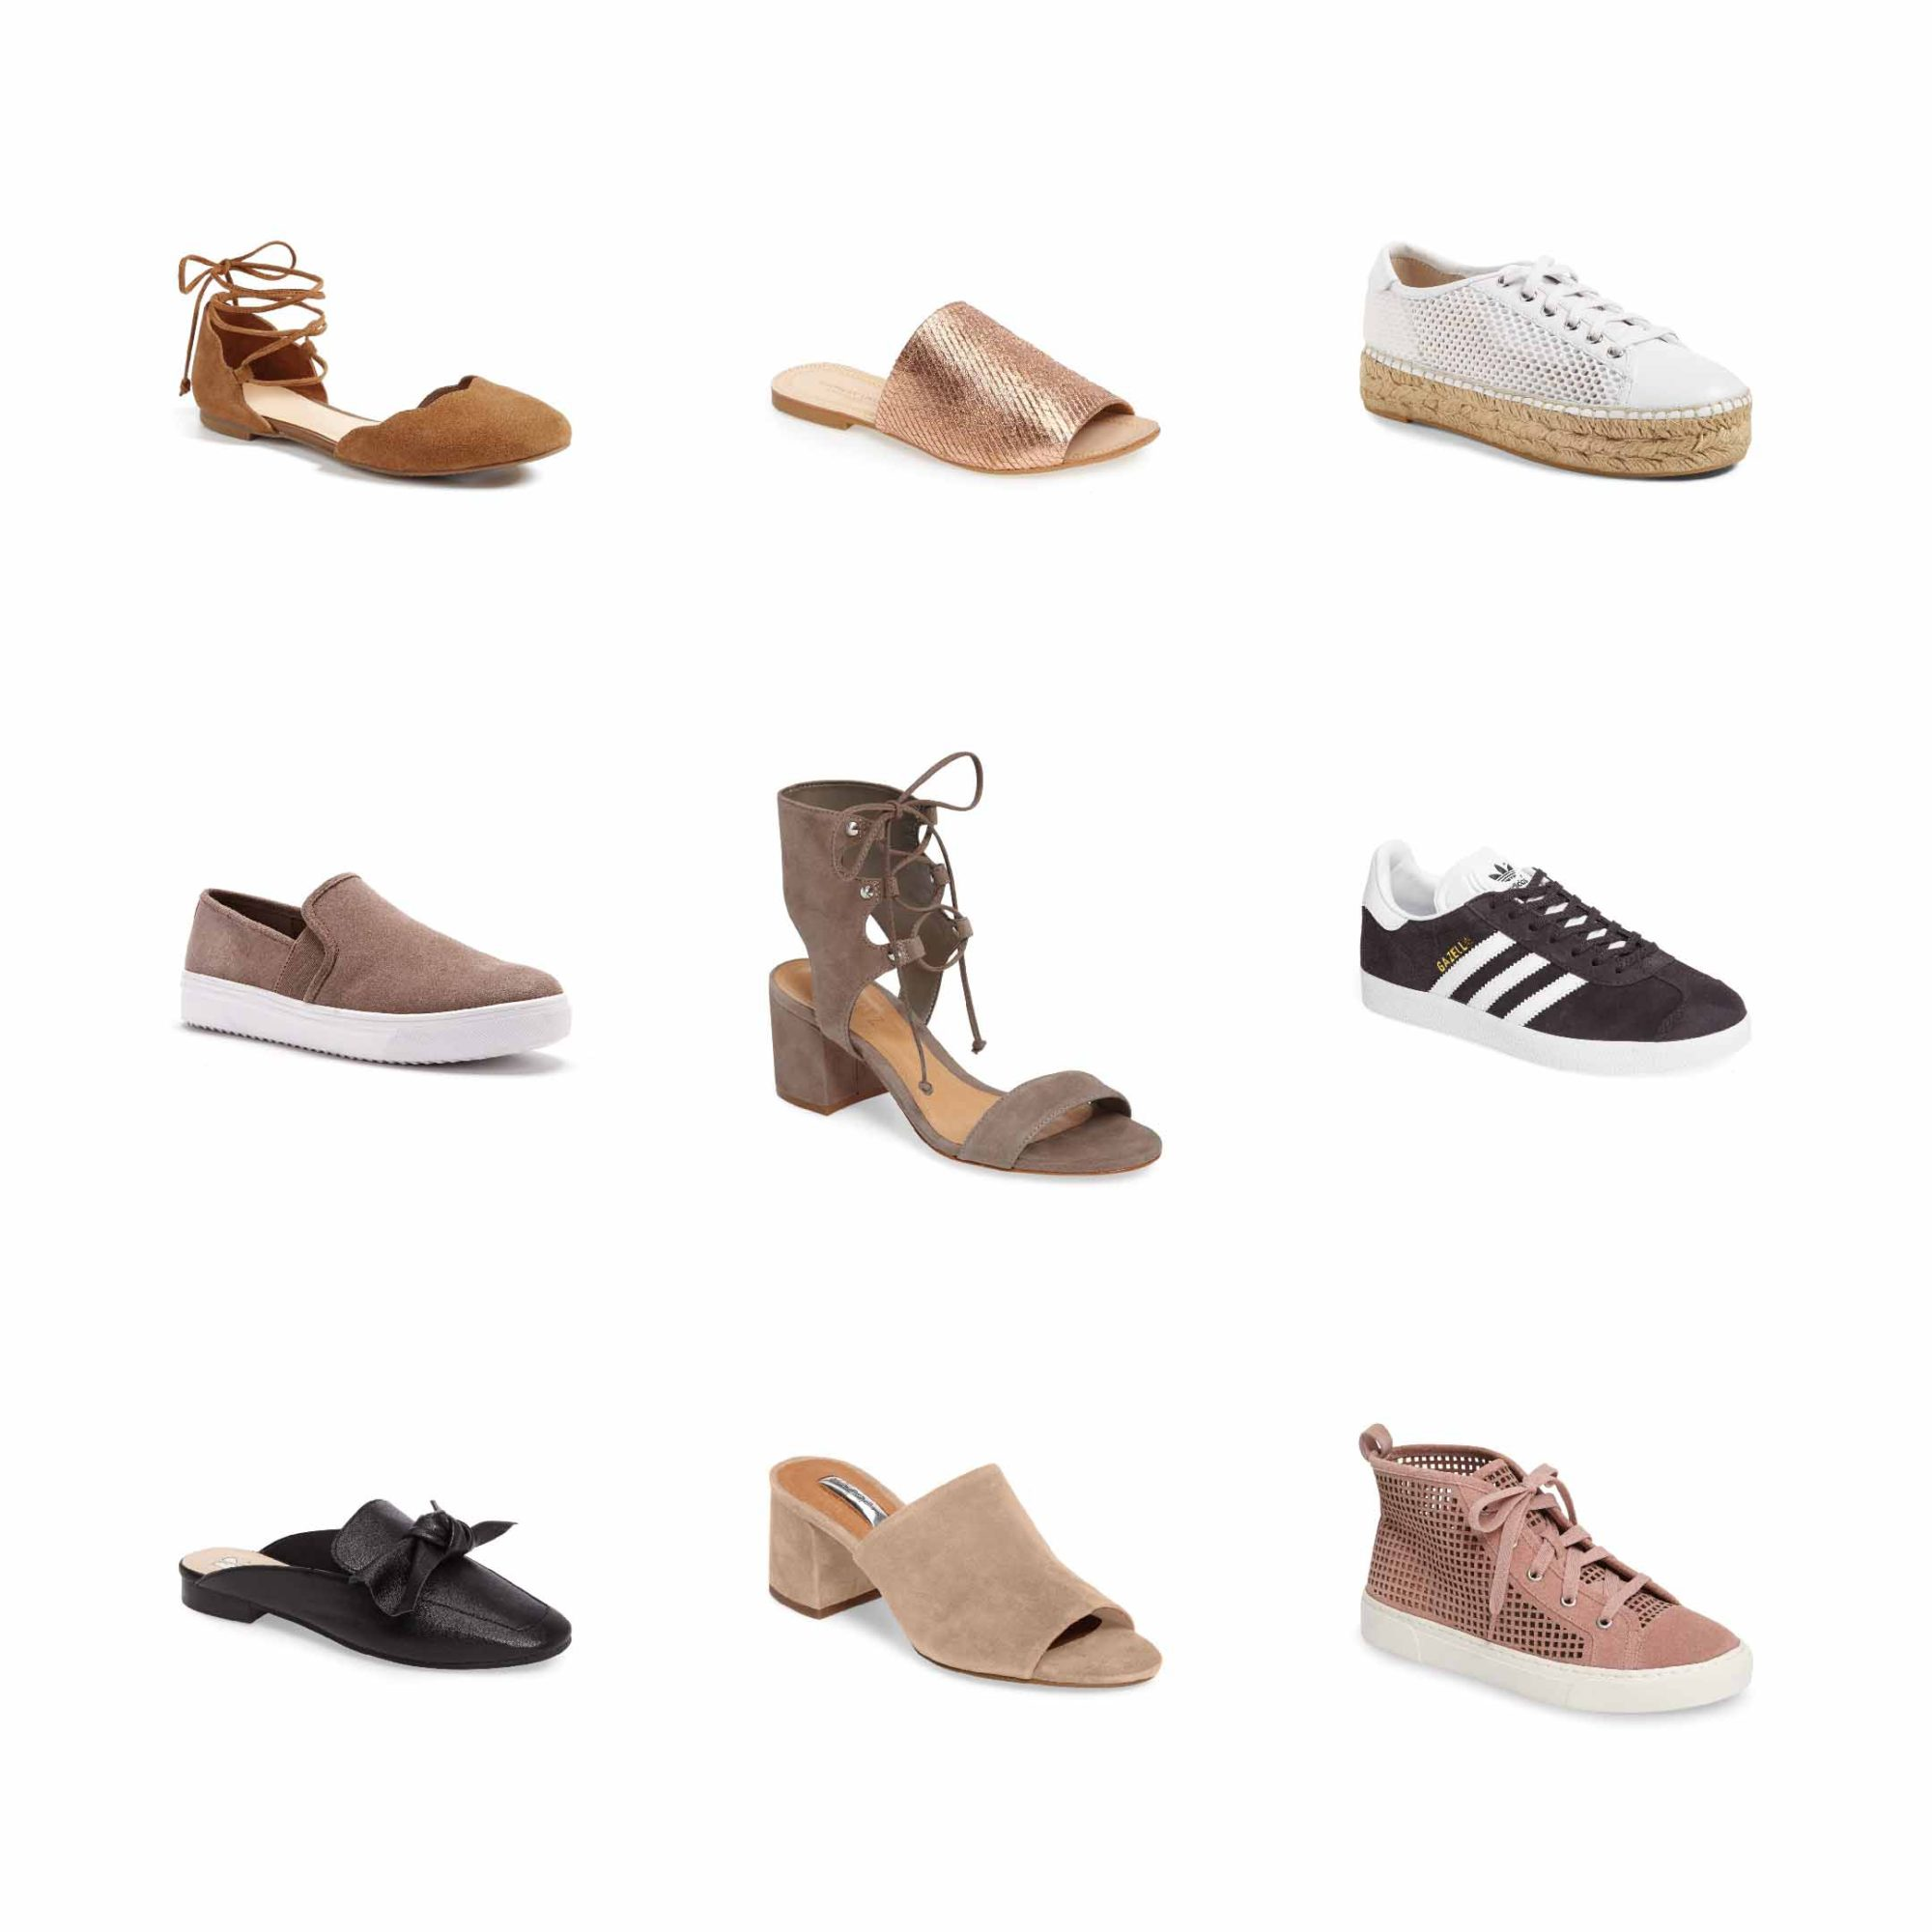 Spring Shoes Under $100